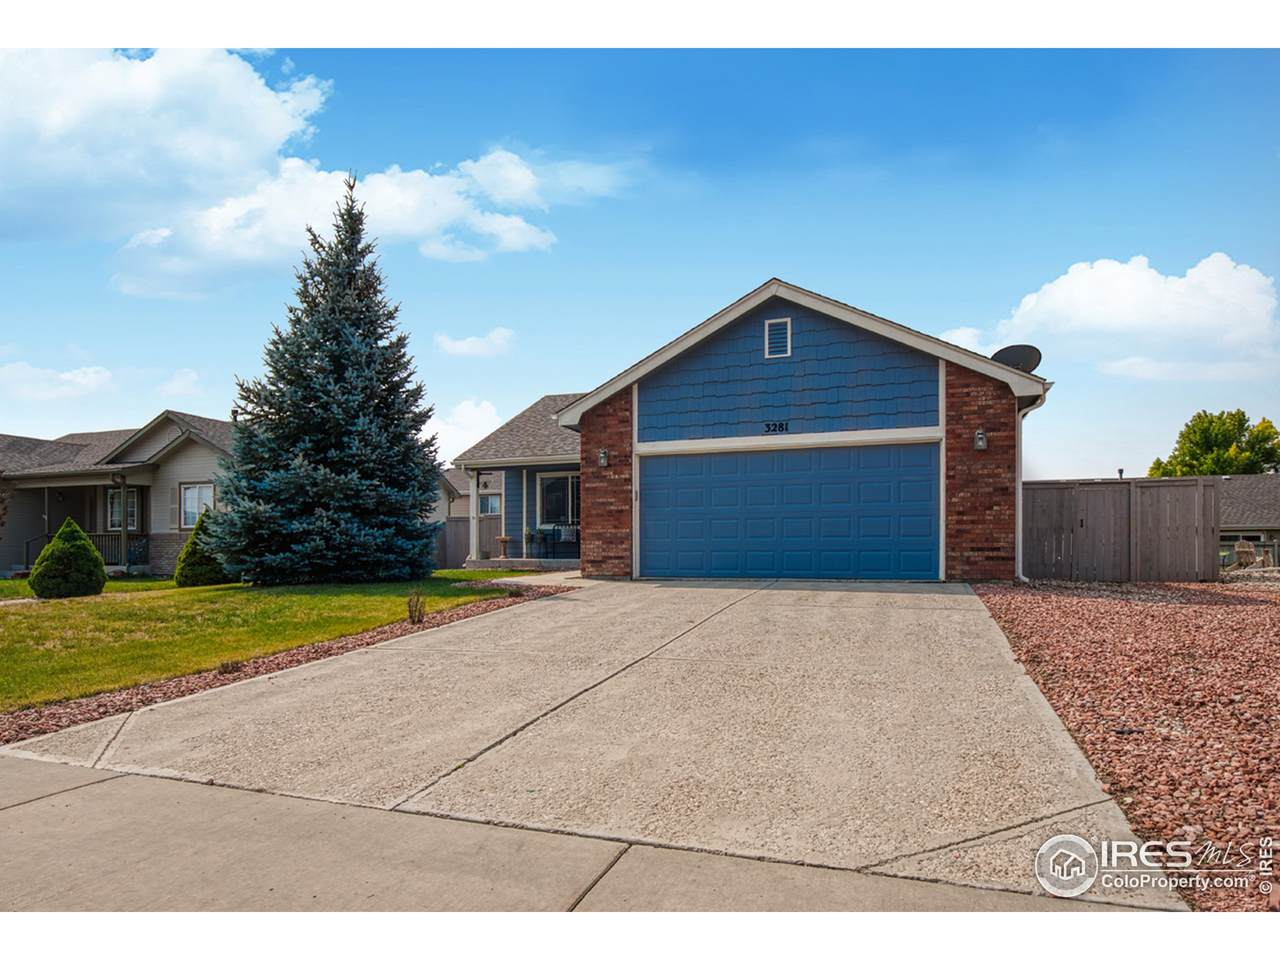 3281 Grizzly Way - Photo 1